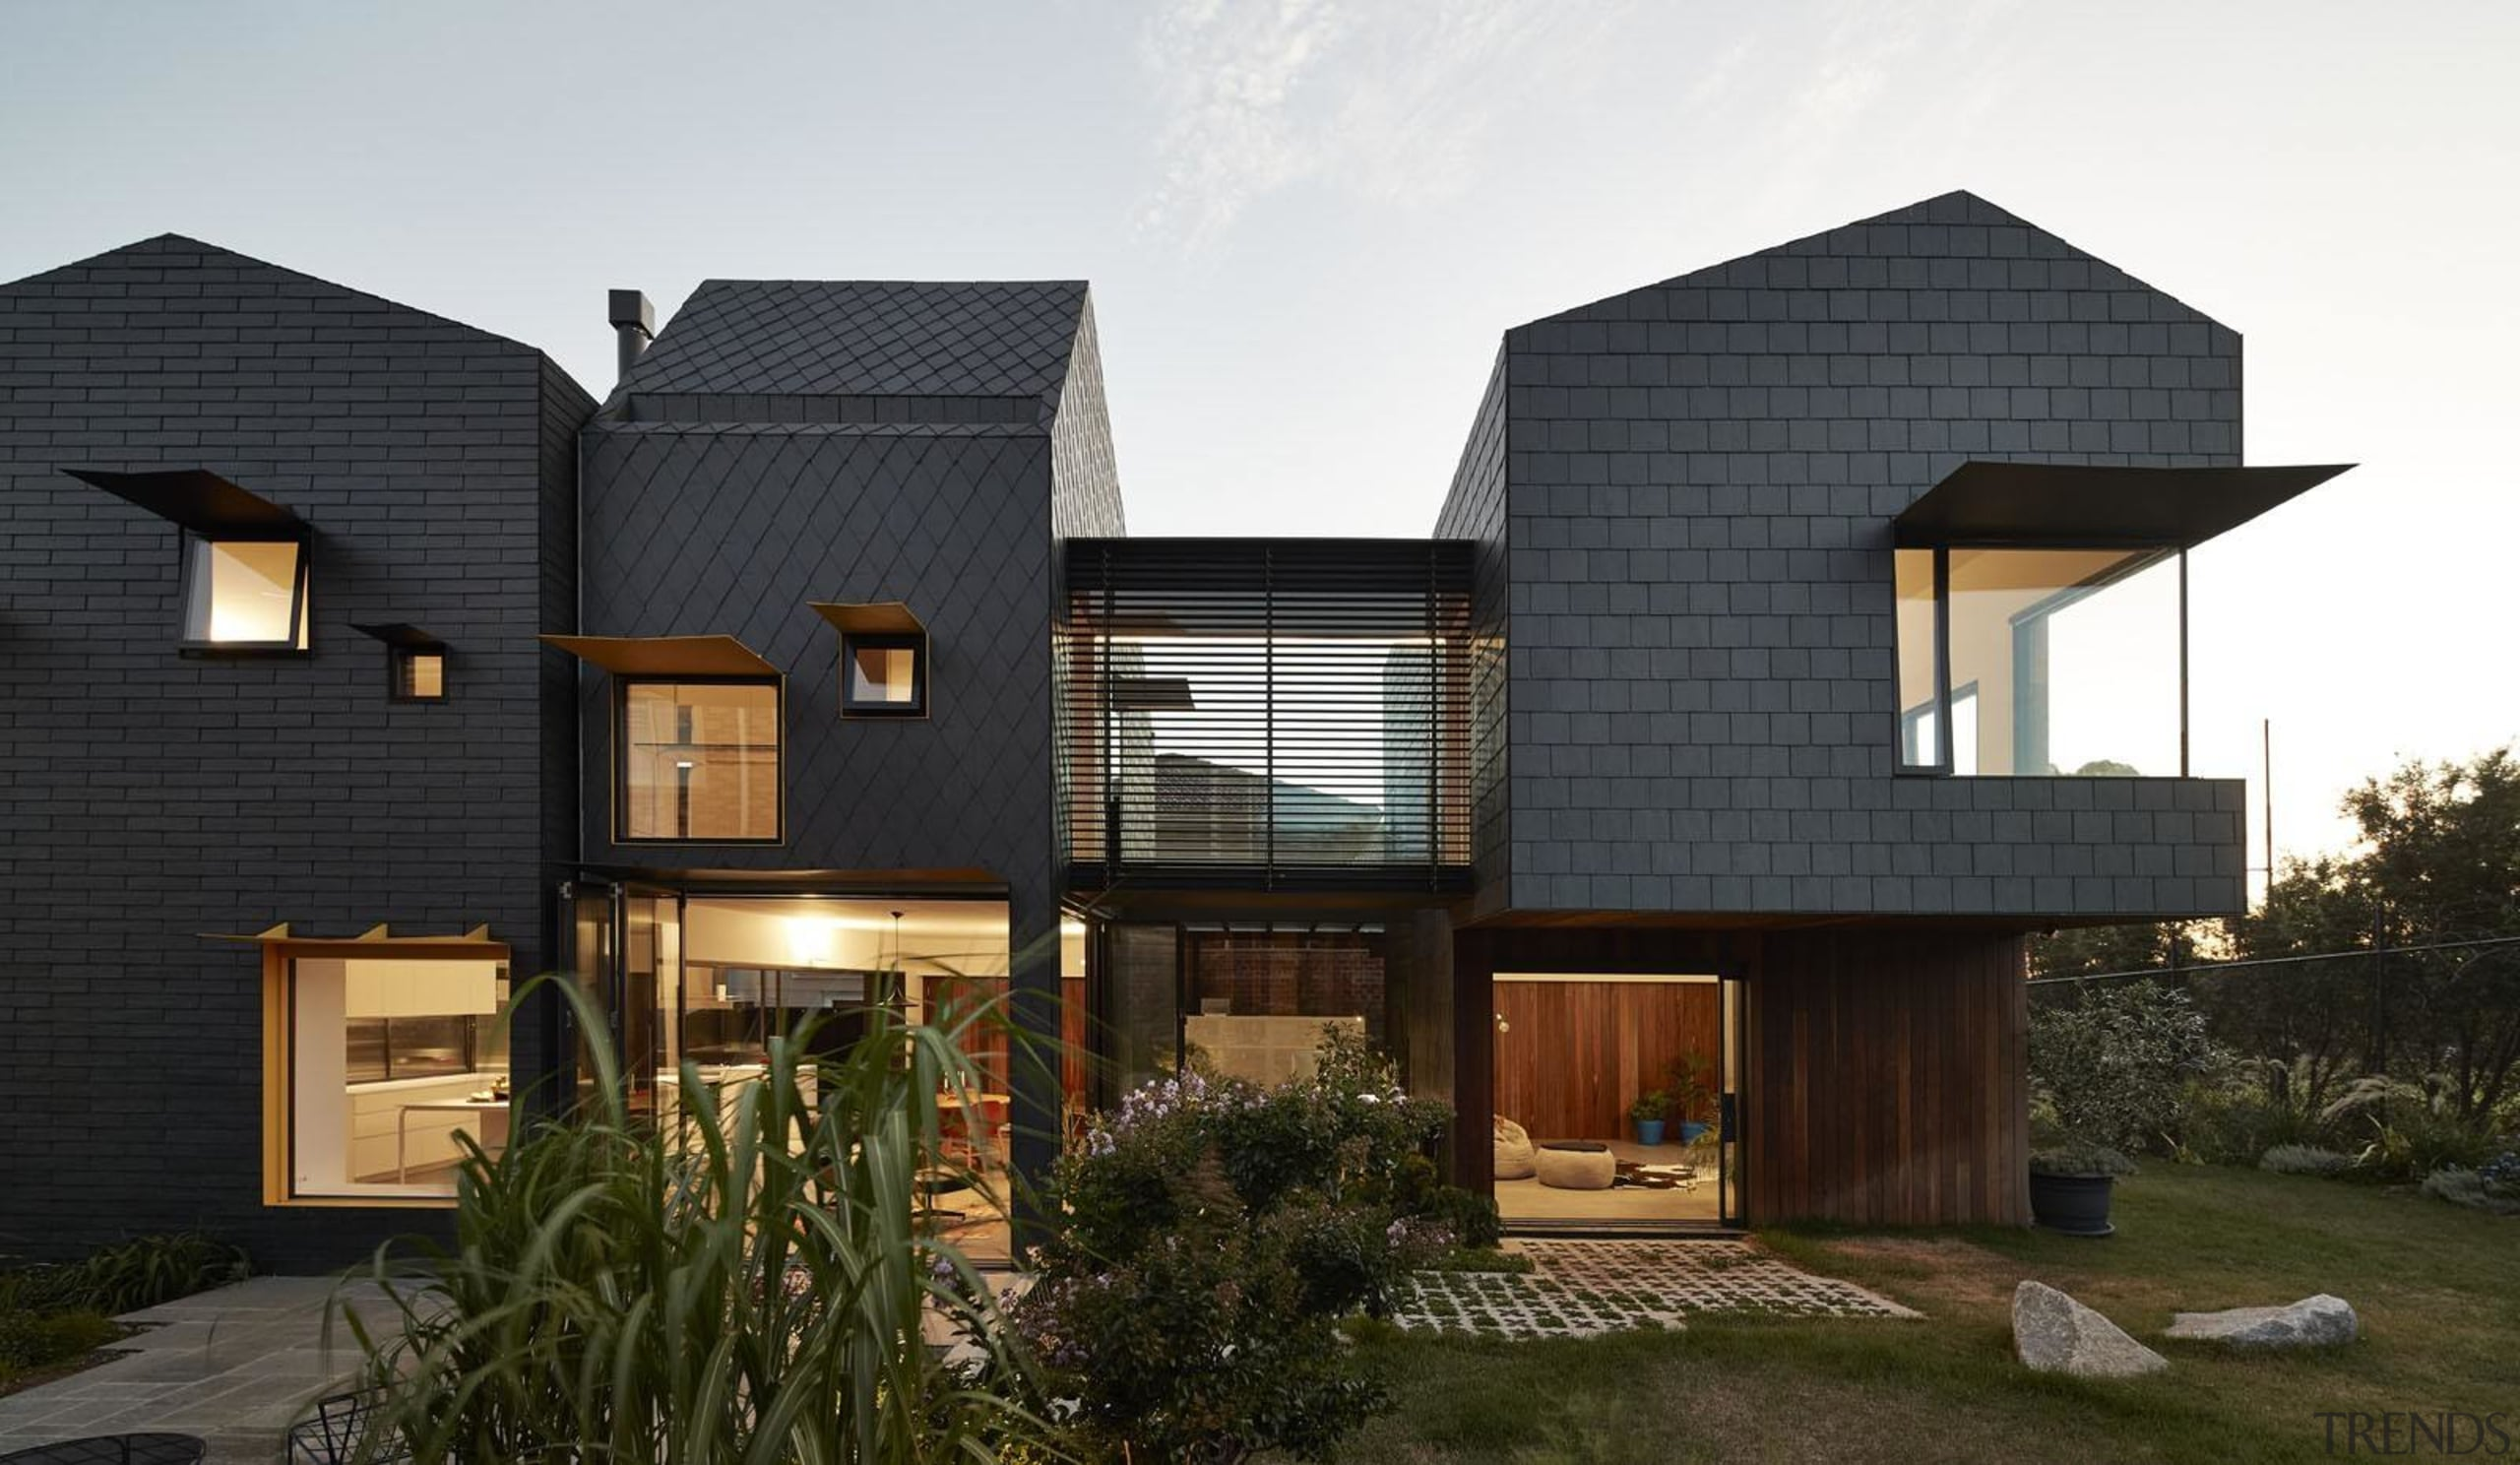 Architect: Austin Maynard ArchitectsPhotography by Peter Bennetts architecture, building, elevation, facade, home, house, property, real estate, residential area, roof, siding, black, white, brown